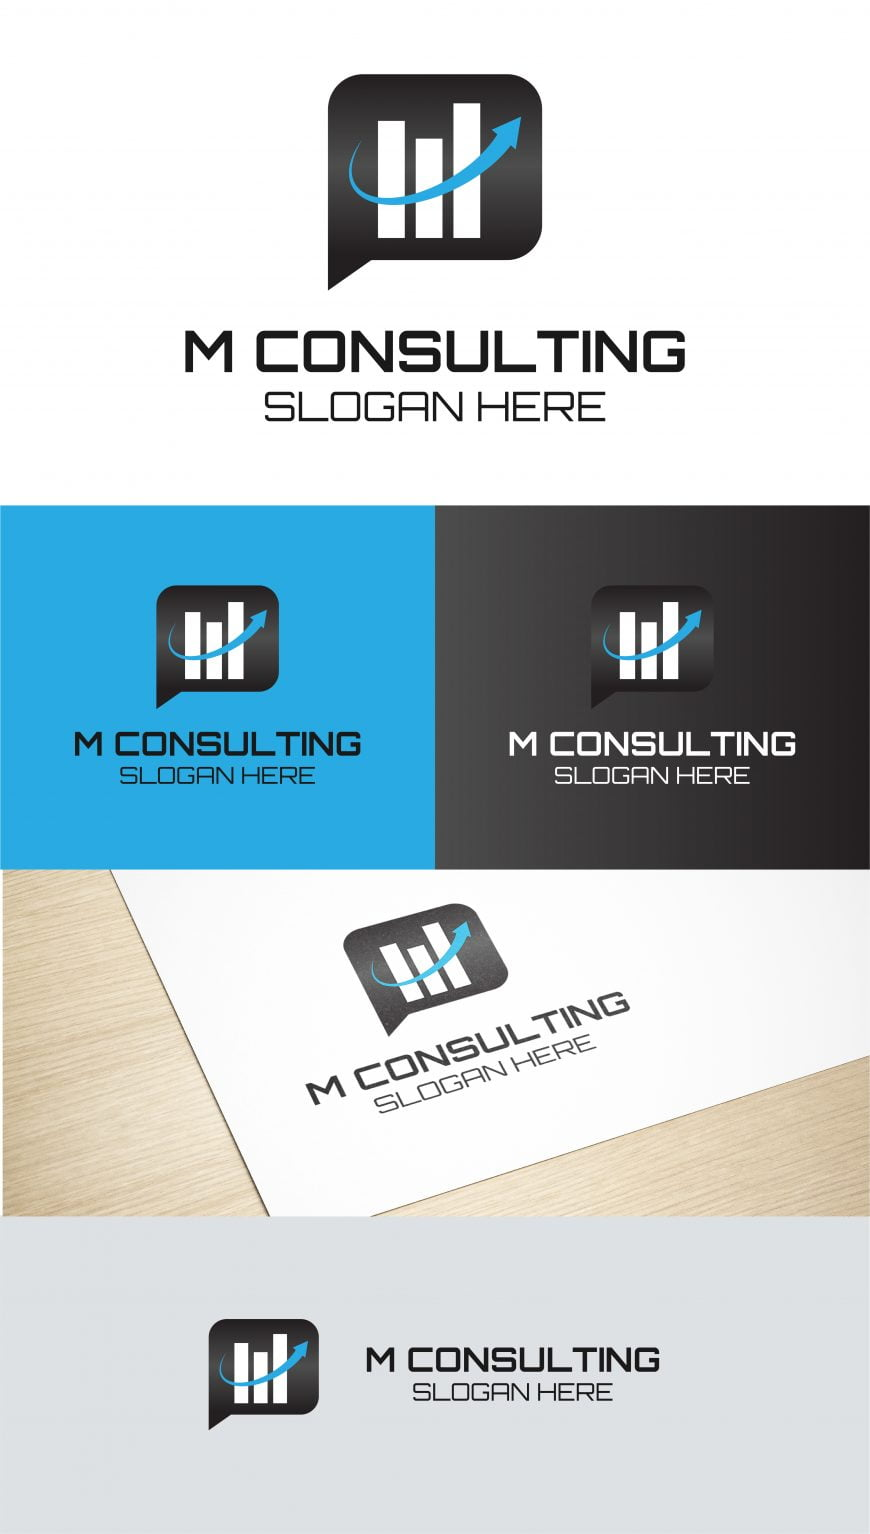 CONSULTING LOGO DESIGN TEMPLATE